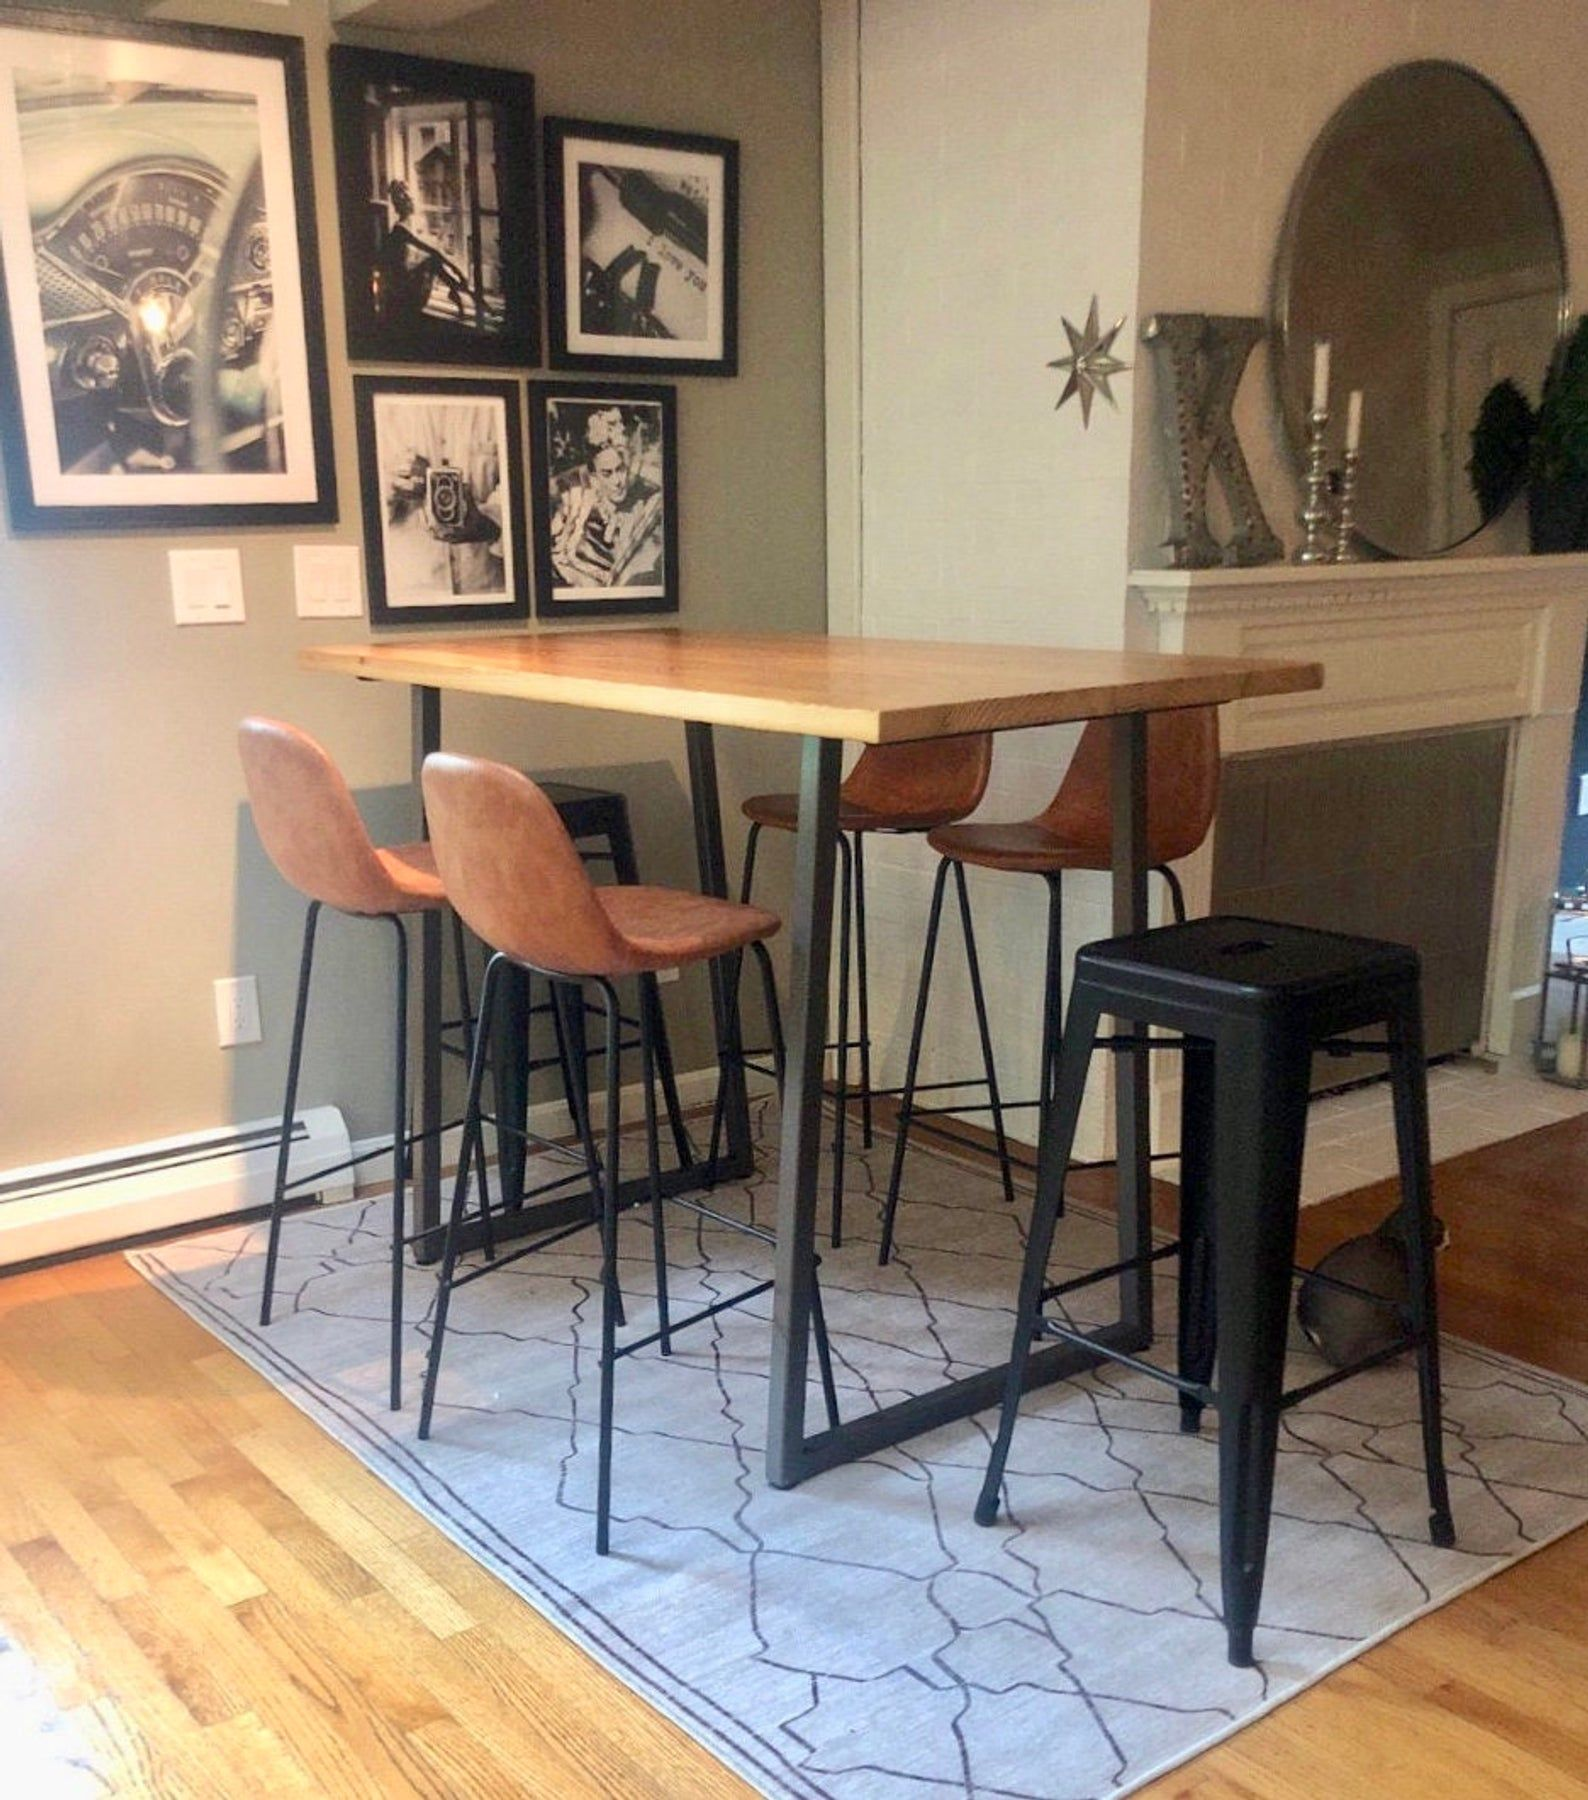 Solid Wood Bar Height Or Counter Height Table Pub Table With Reclaimed Wood And Flared U Steel Legs Choose Color Size Thickness Finish Cuisine Appartement Mobilier De Salon Meuble Acier